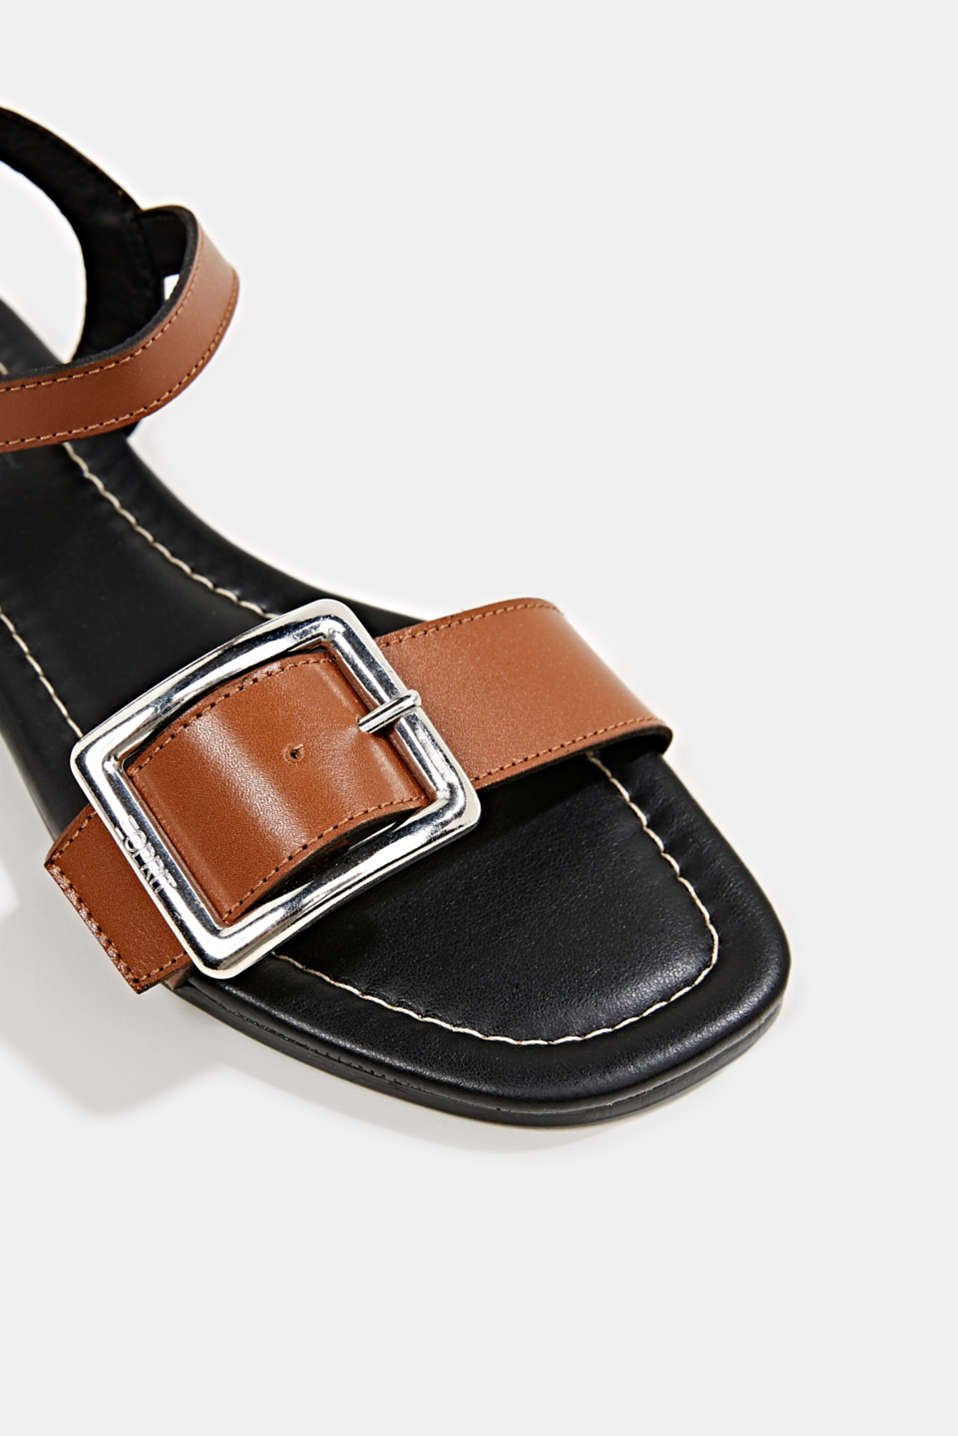 Leather sandals with buckles, CARAMEL, detail image number 4